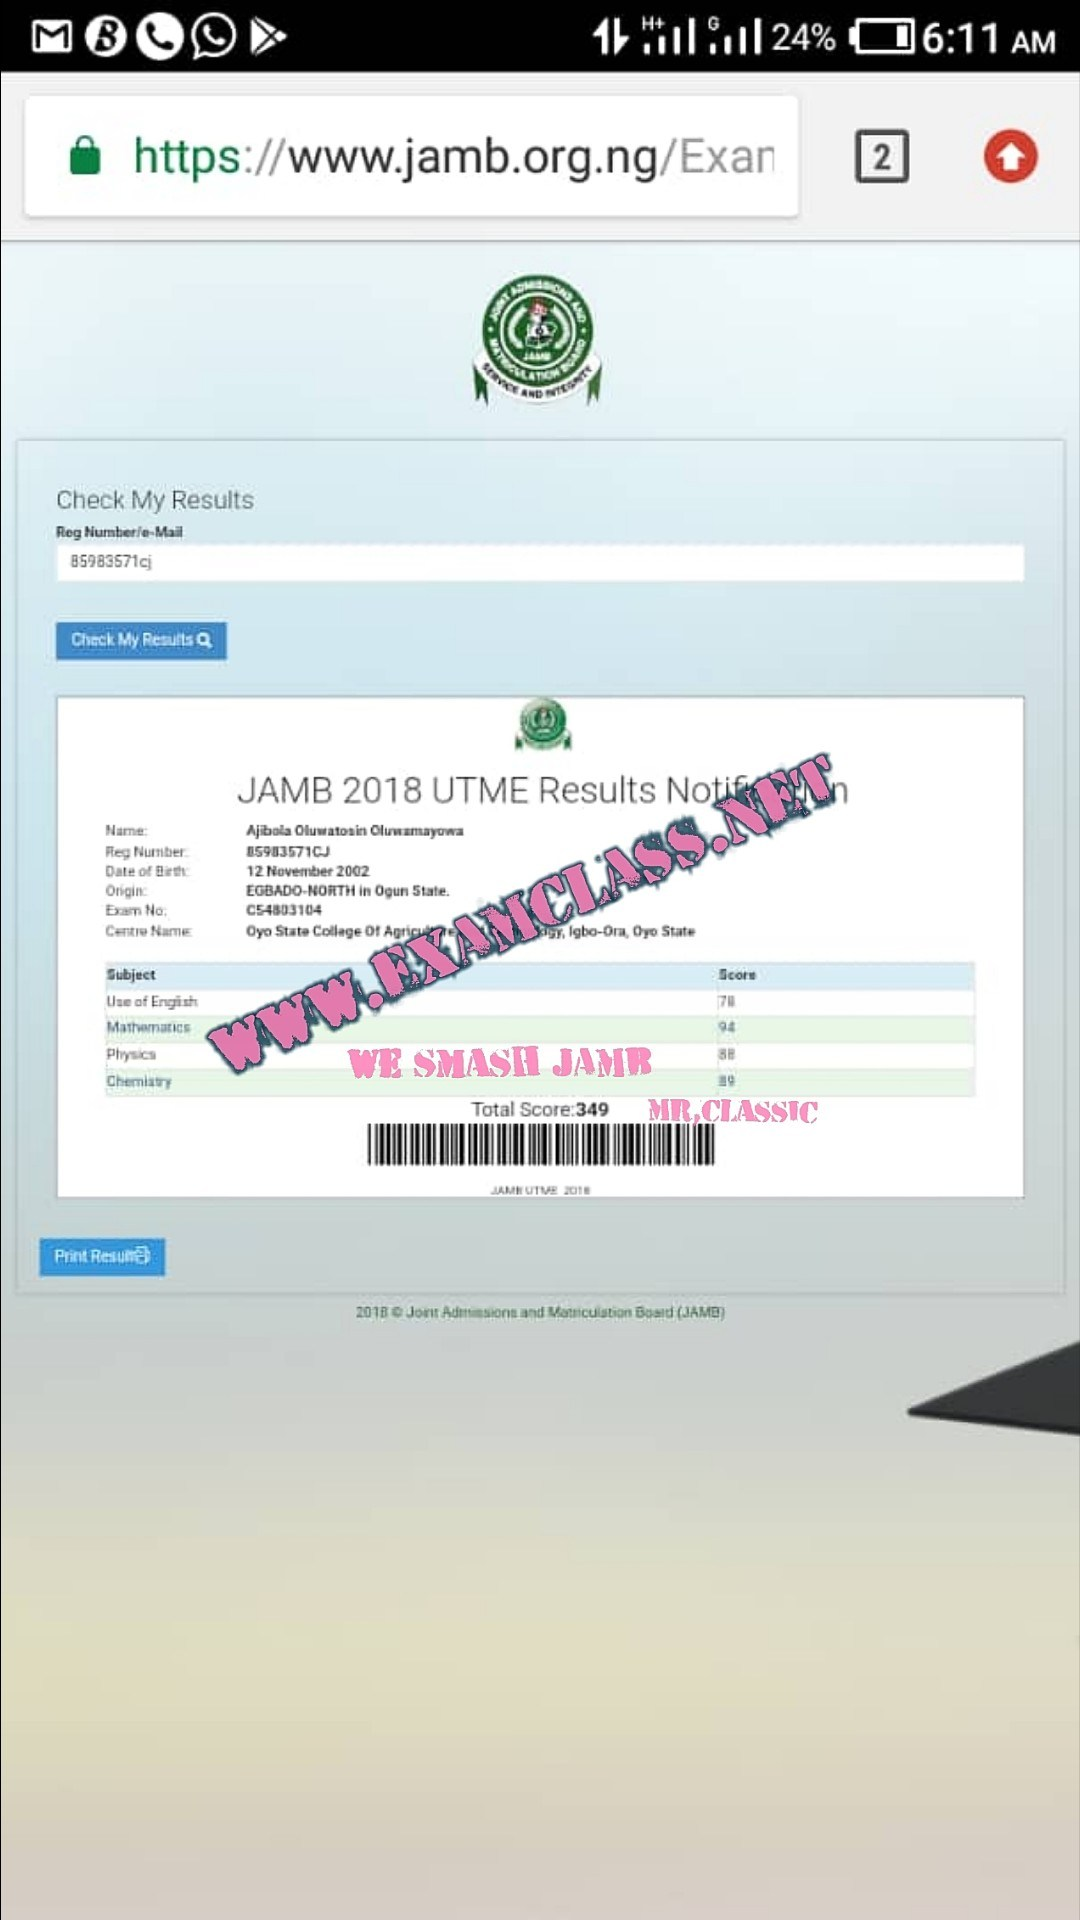 2019 BEST JAMB QUESTIONS & ANSWERS EXPO RUNS CHOKES UTME SITE-SCORE 320+